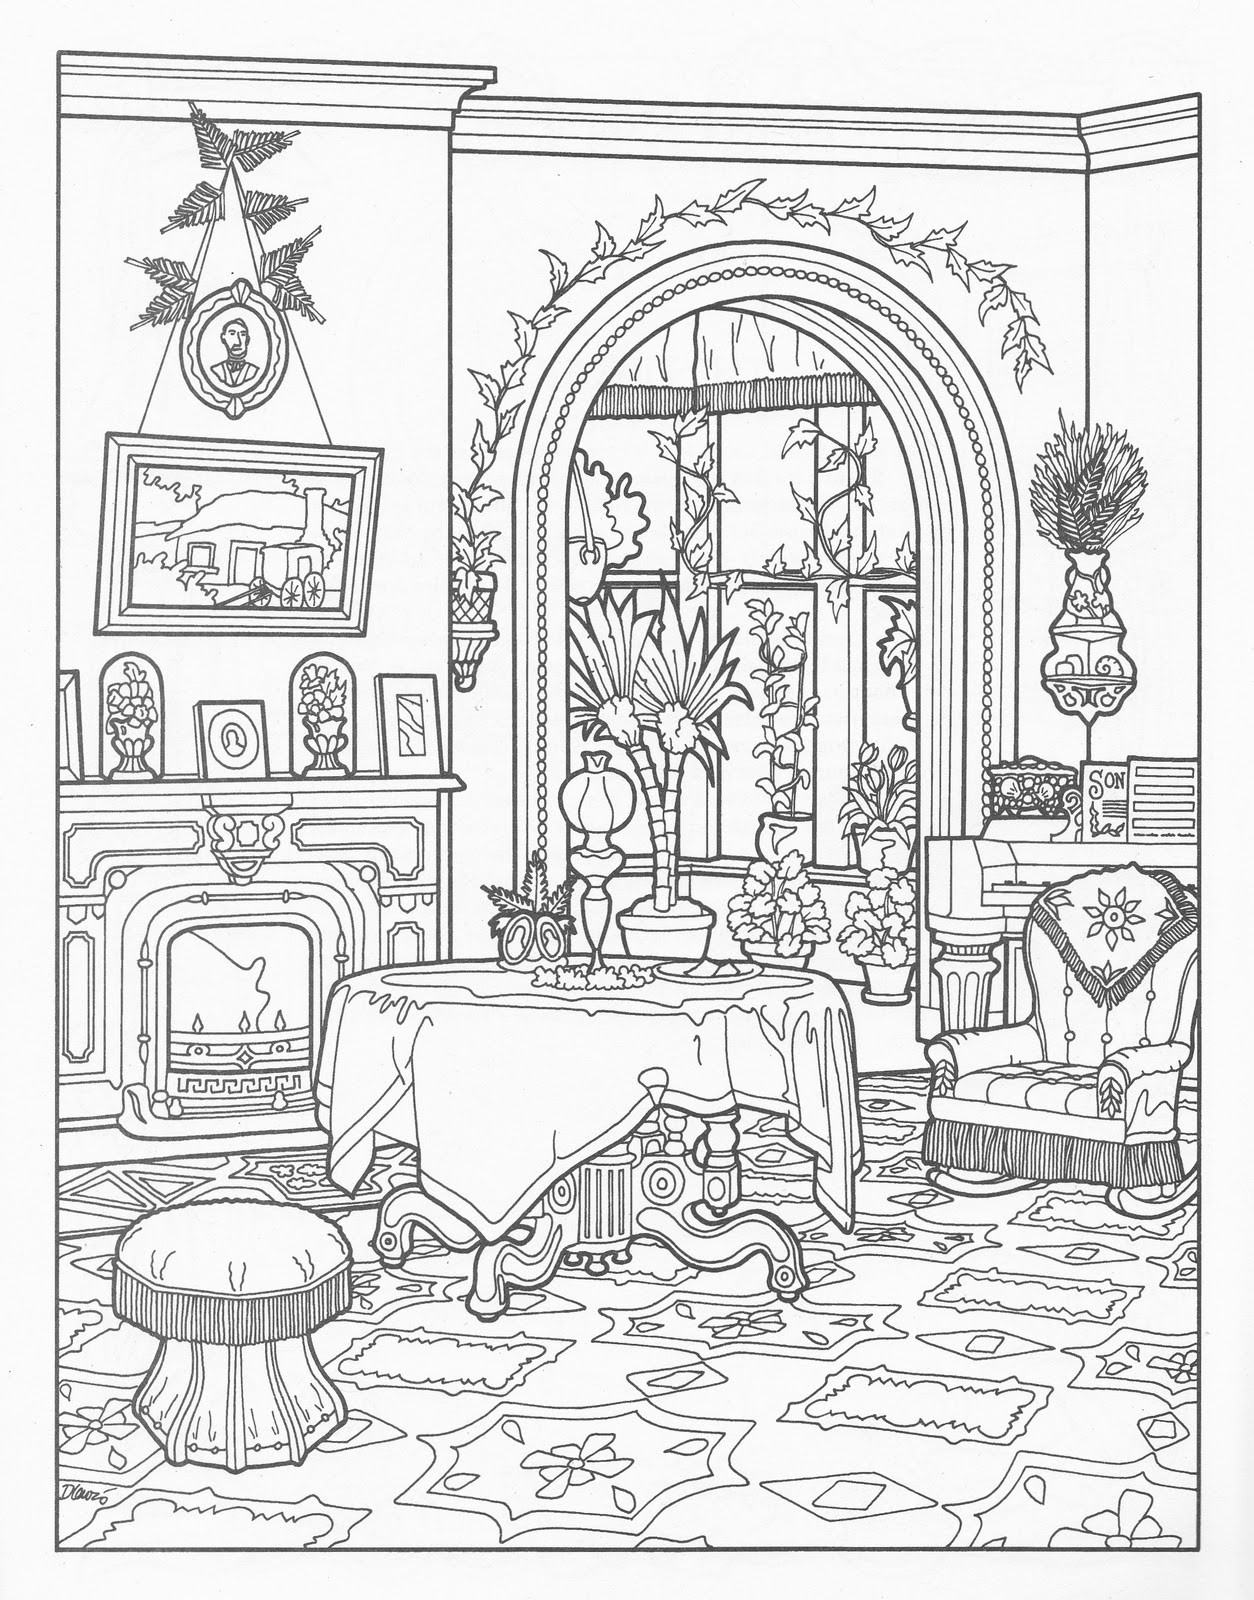 Best ideas about House Coloring Pages For Adults . Save or Pin victorian house coloring pages Now.